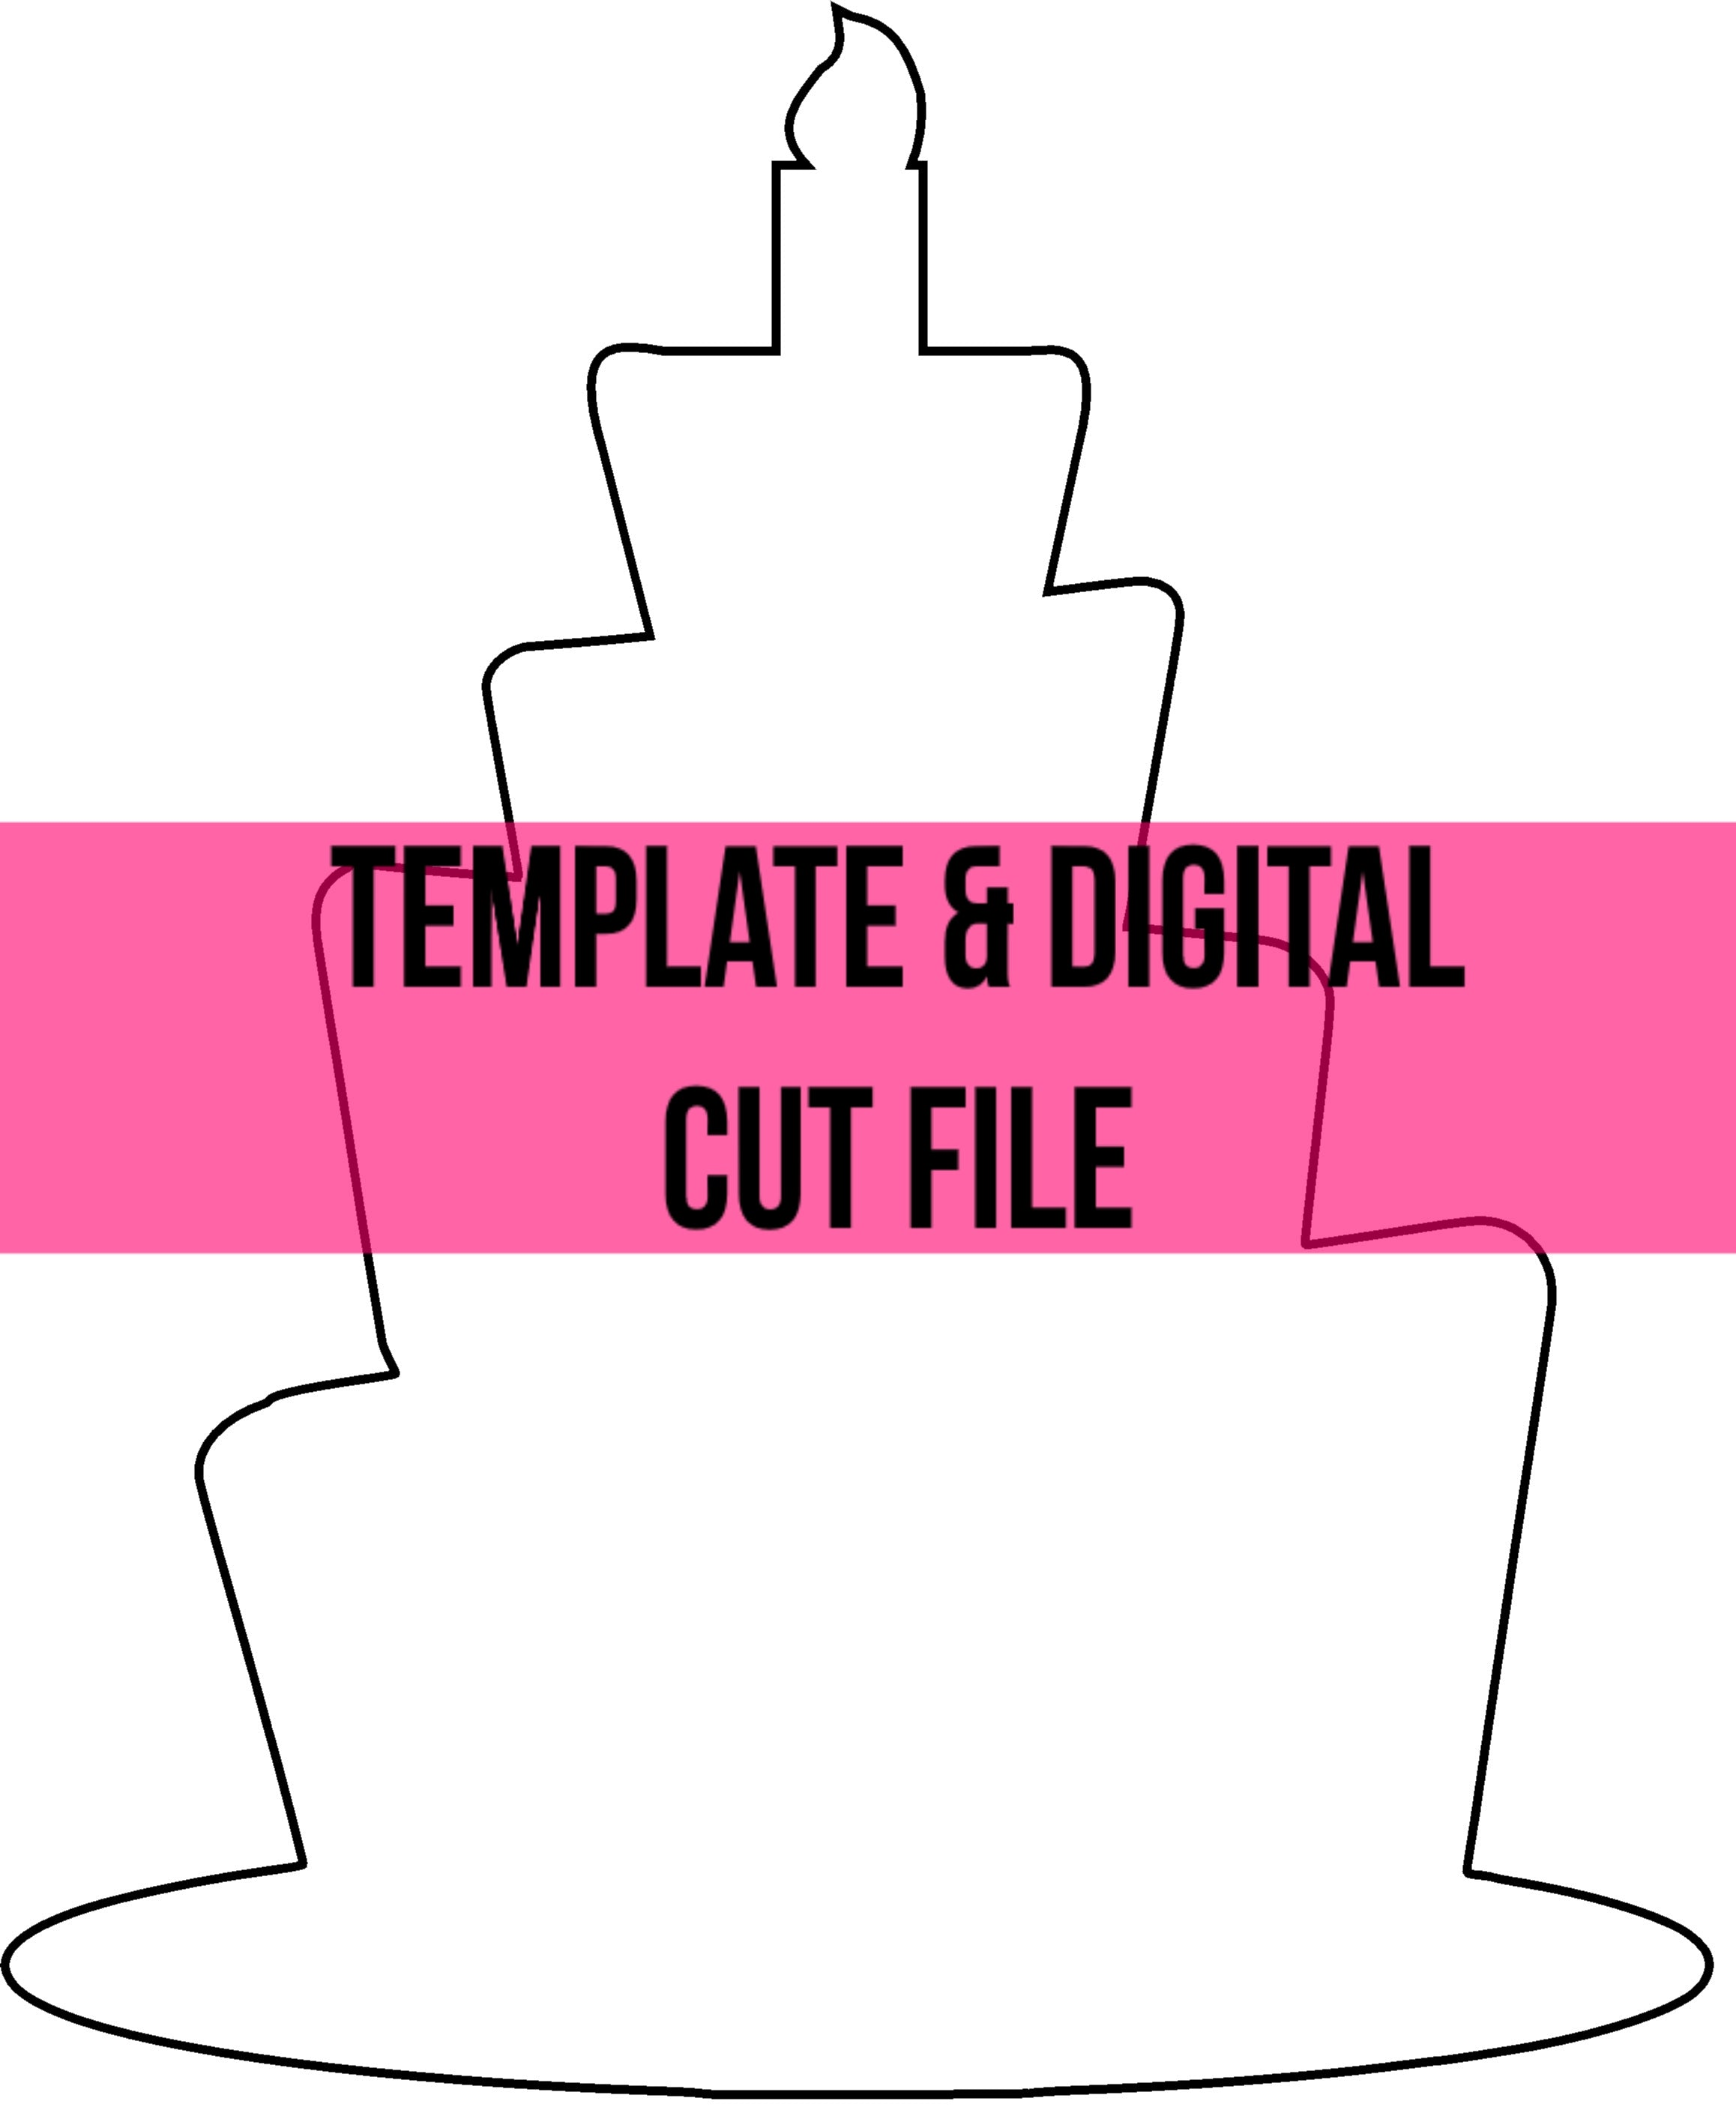 Birthday Cake Template Digital Cut File Southern Adoornments Decor